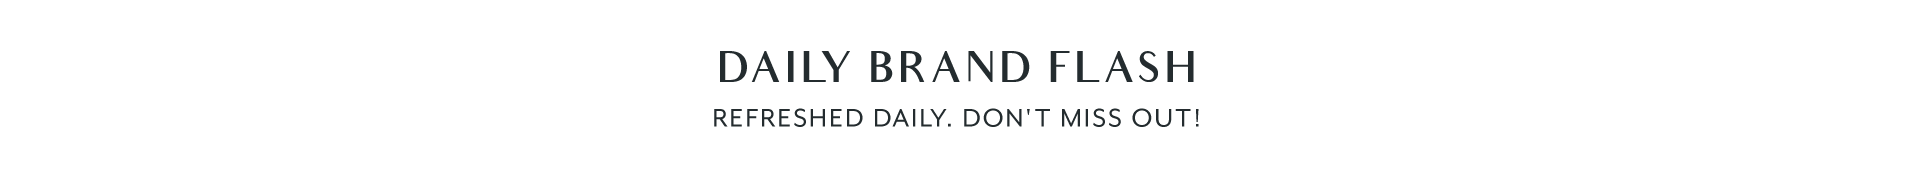 Raya - Daily Brand Flash - Title Banner